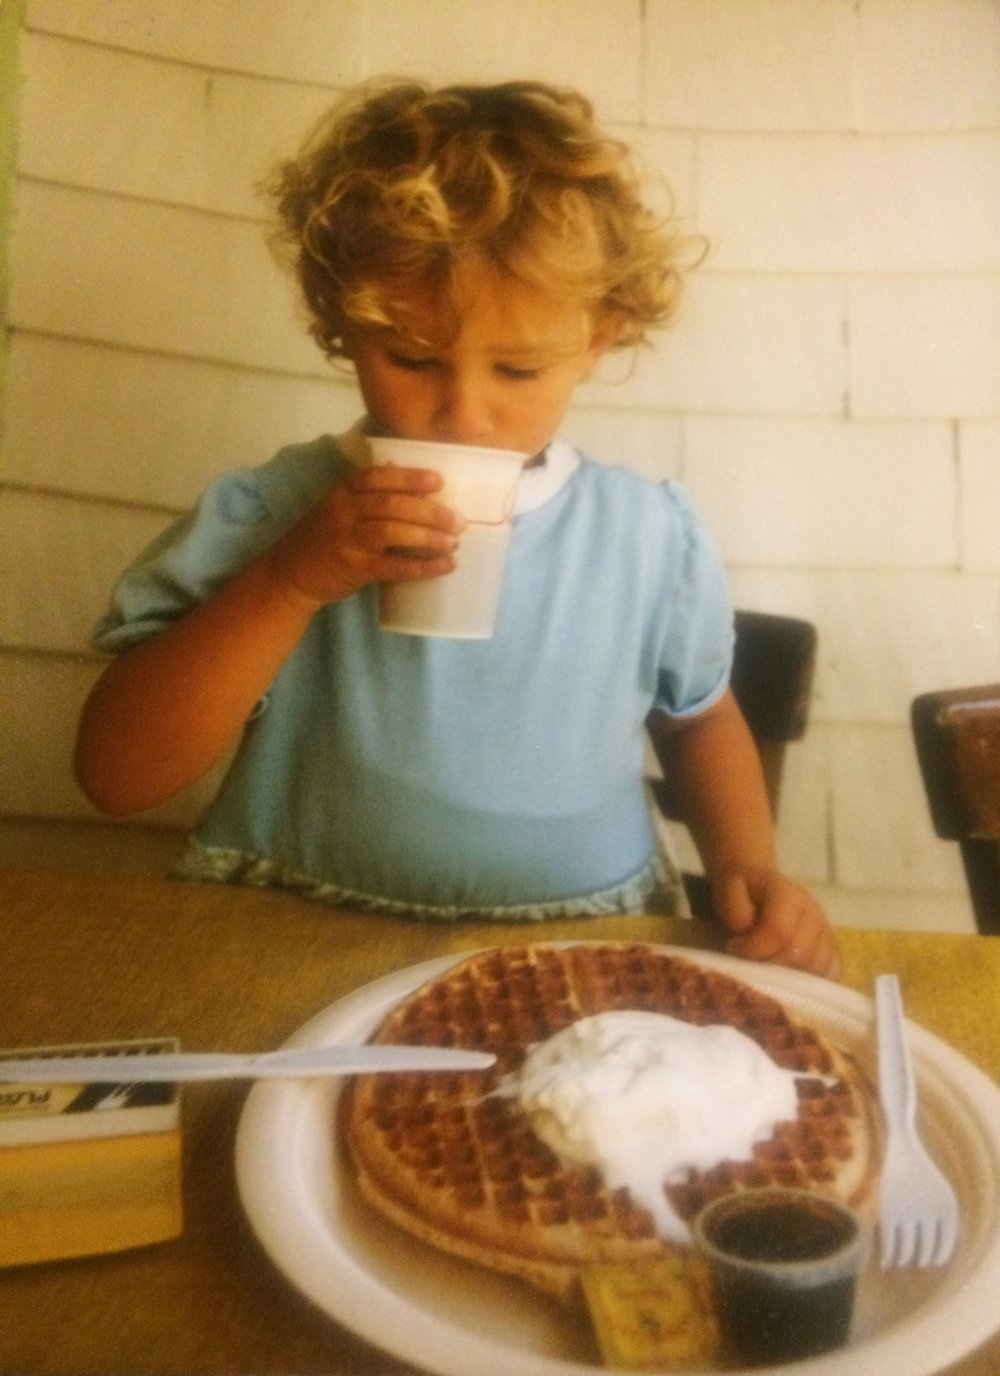 Always say yes to extra whipped cream. c. 1988